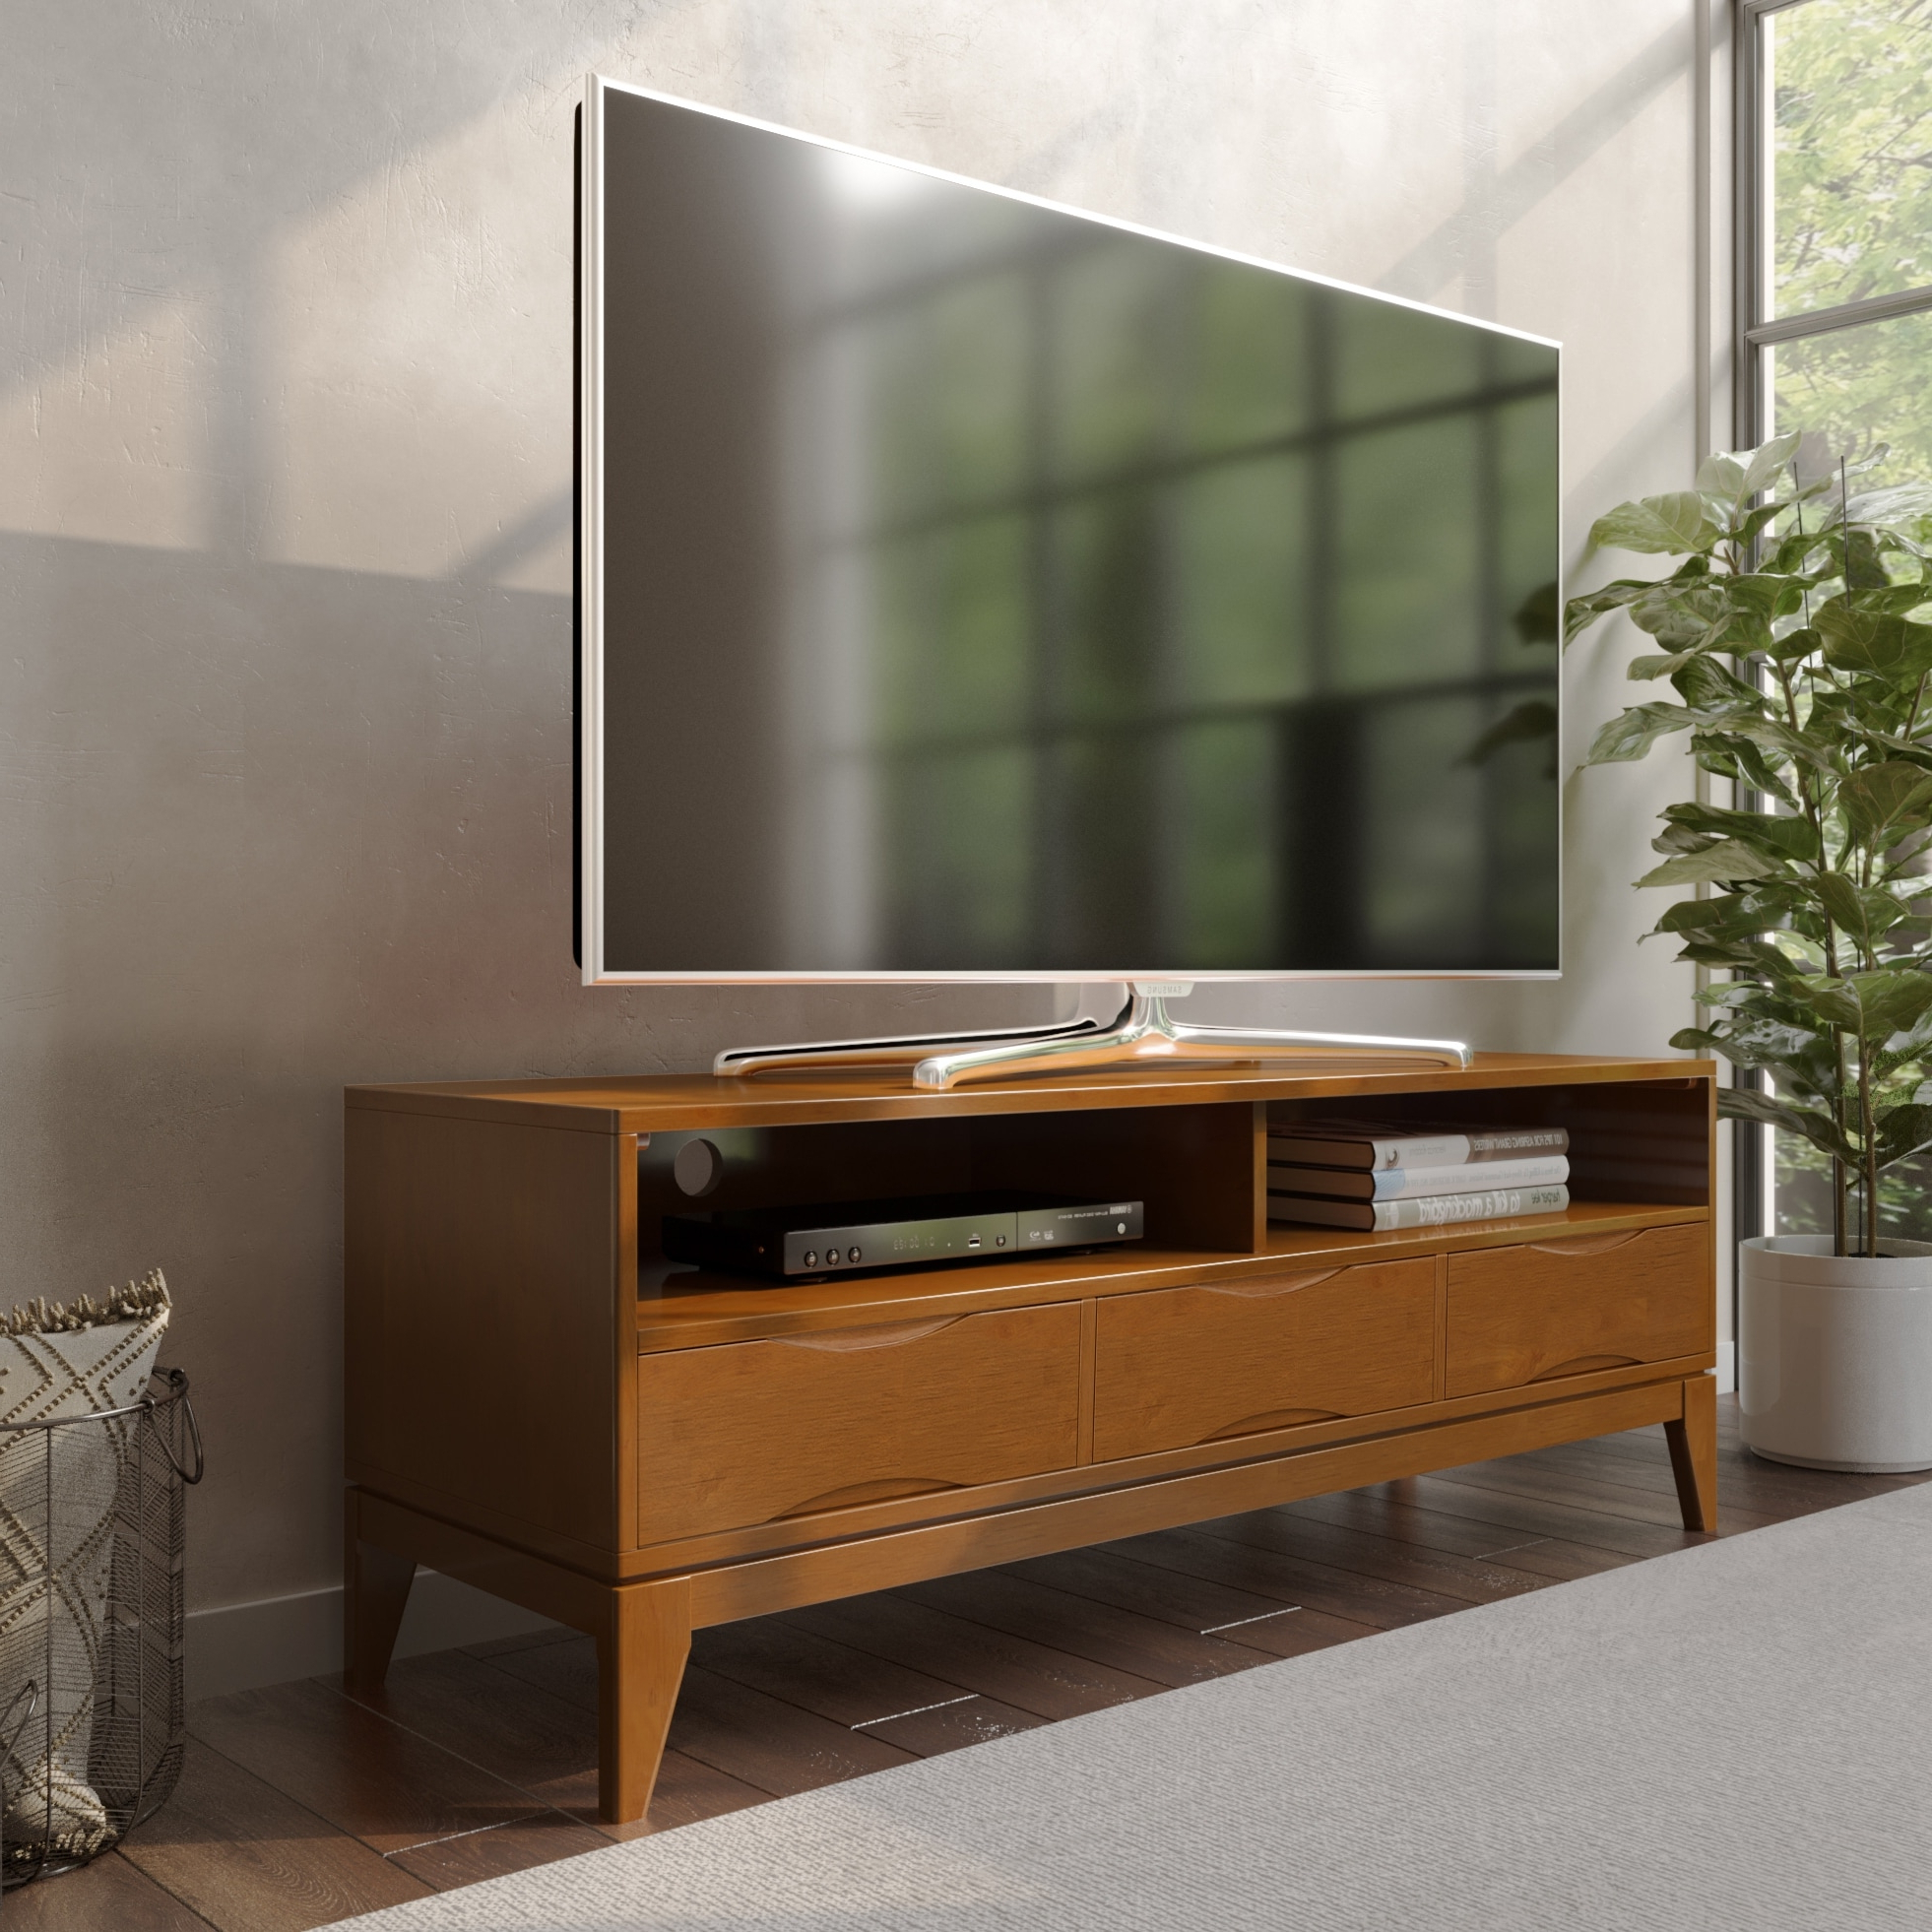 """Wyndenhall Pearson Solid Hardwood 60 Inch Wide Mid Century Inside Calea Tv Stands For Tvs Up To 65"""" (View 8 of 20)"""